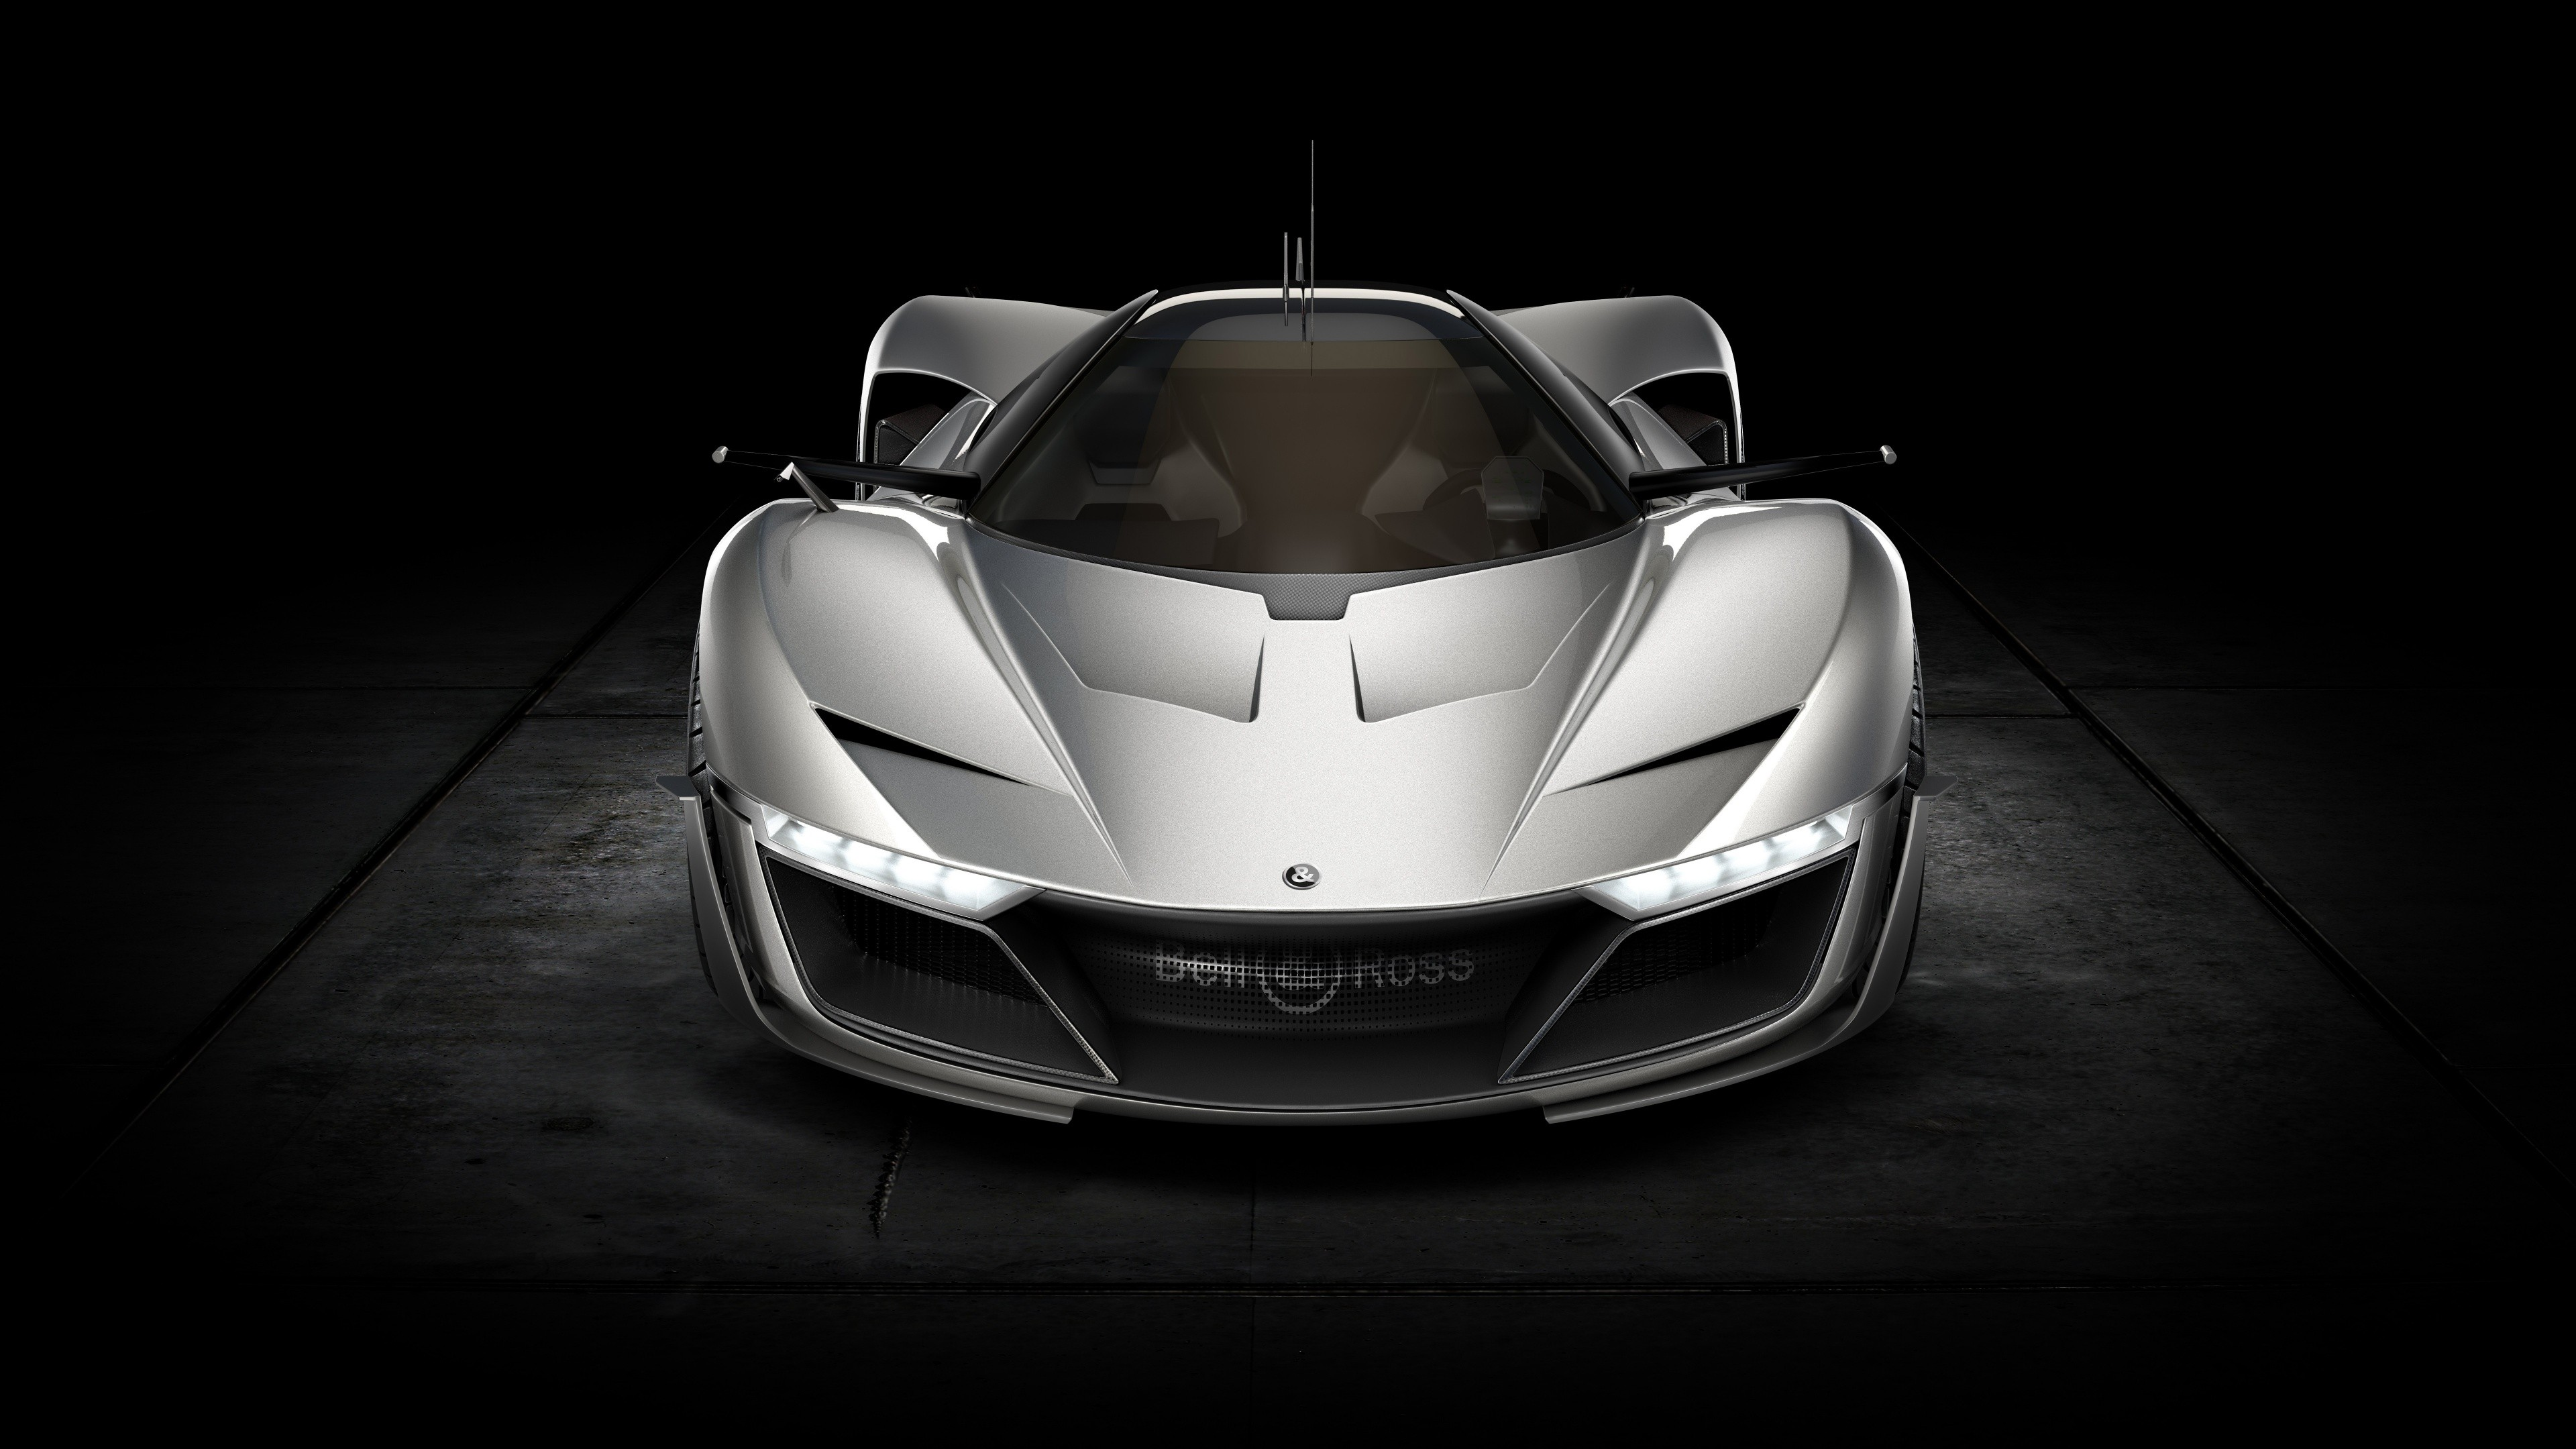 bell and ross sports car 1539104769 - Bell And Ross Sports Car - cars wallpapers, 2016 cars wallpapers